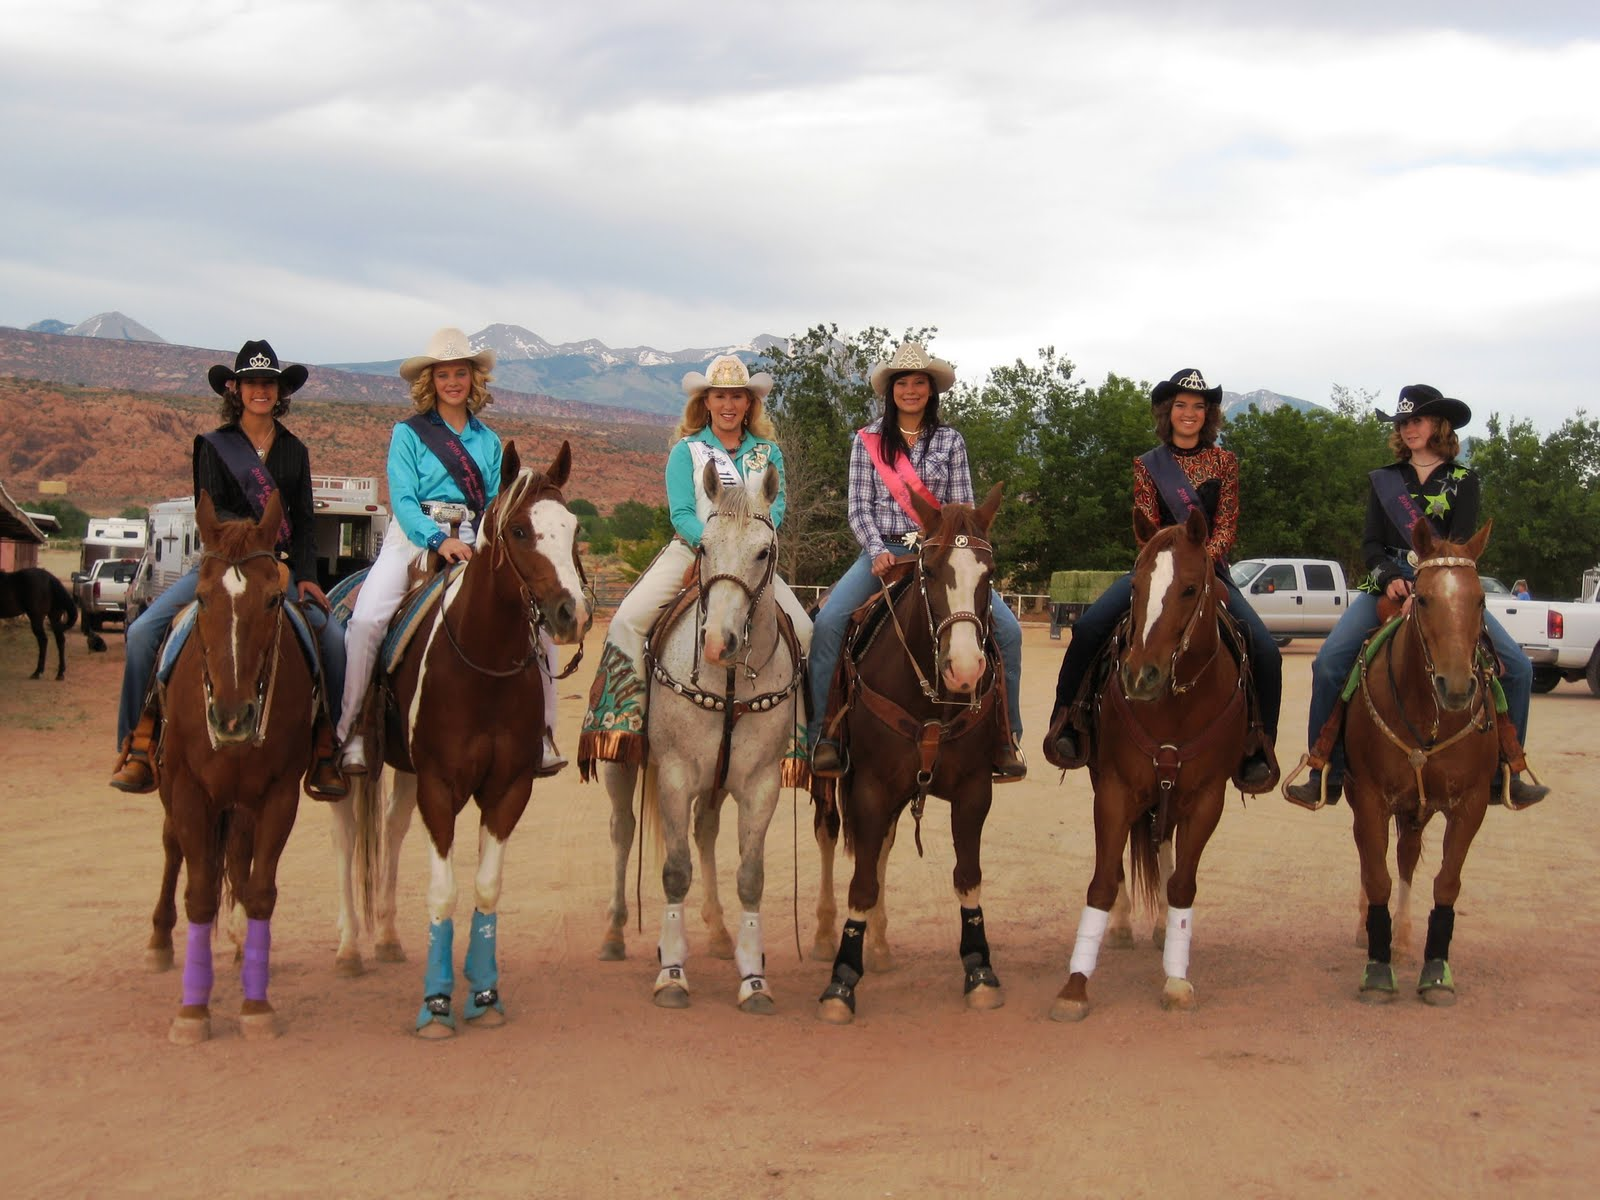 Miss Rodeo Utah 2009 Moab Canyonlands Prca Rodeo